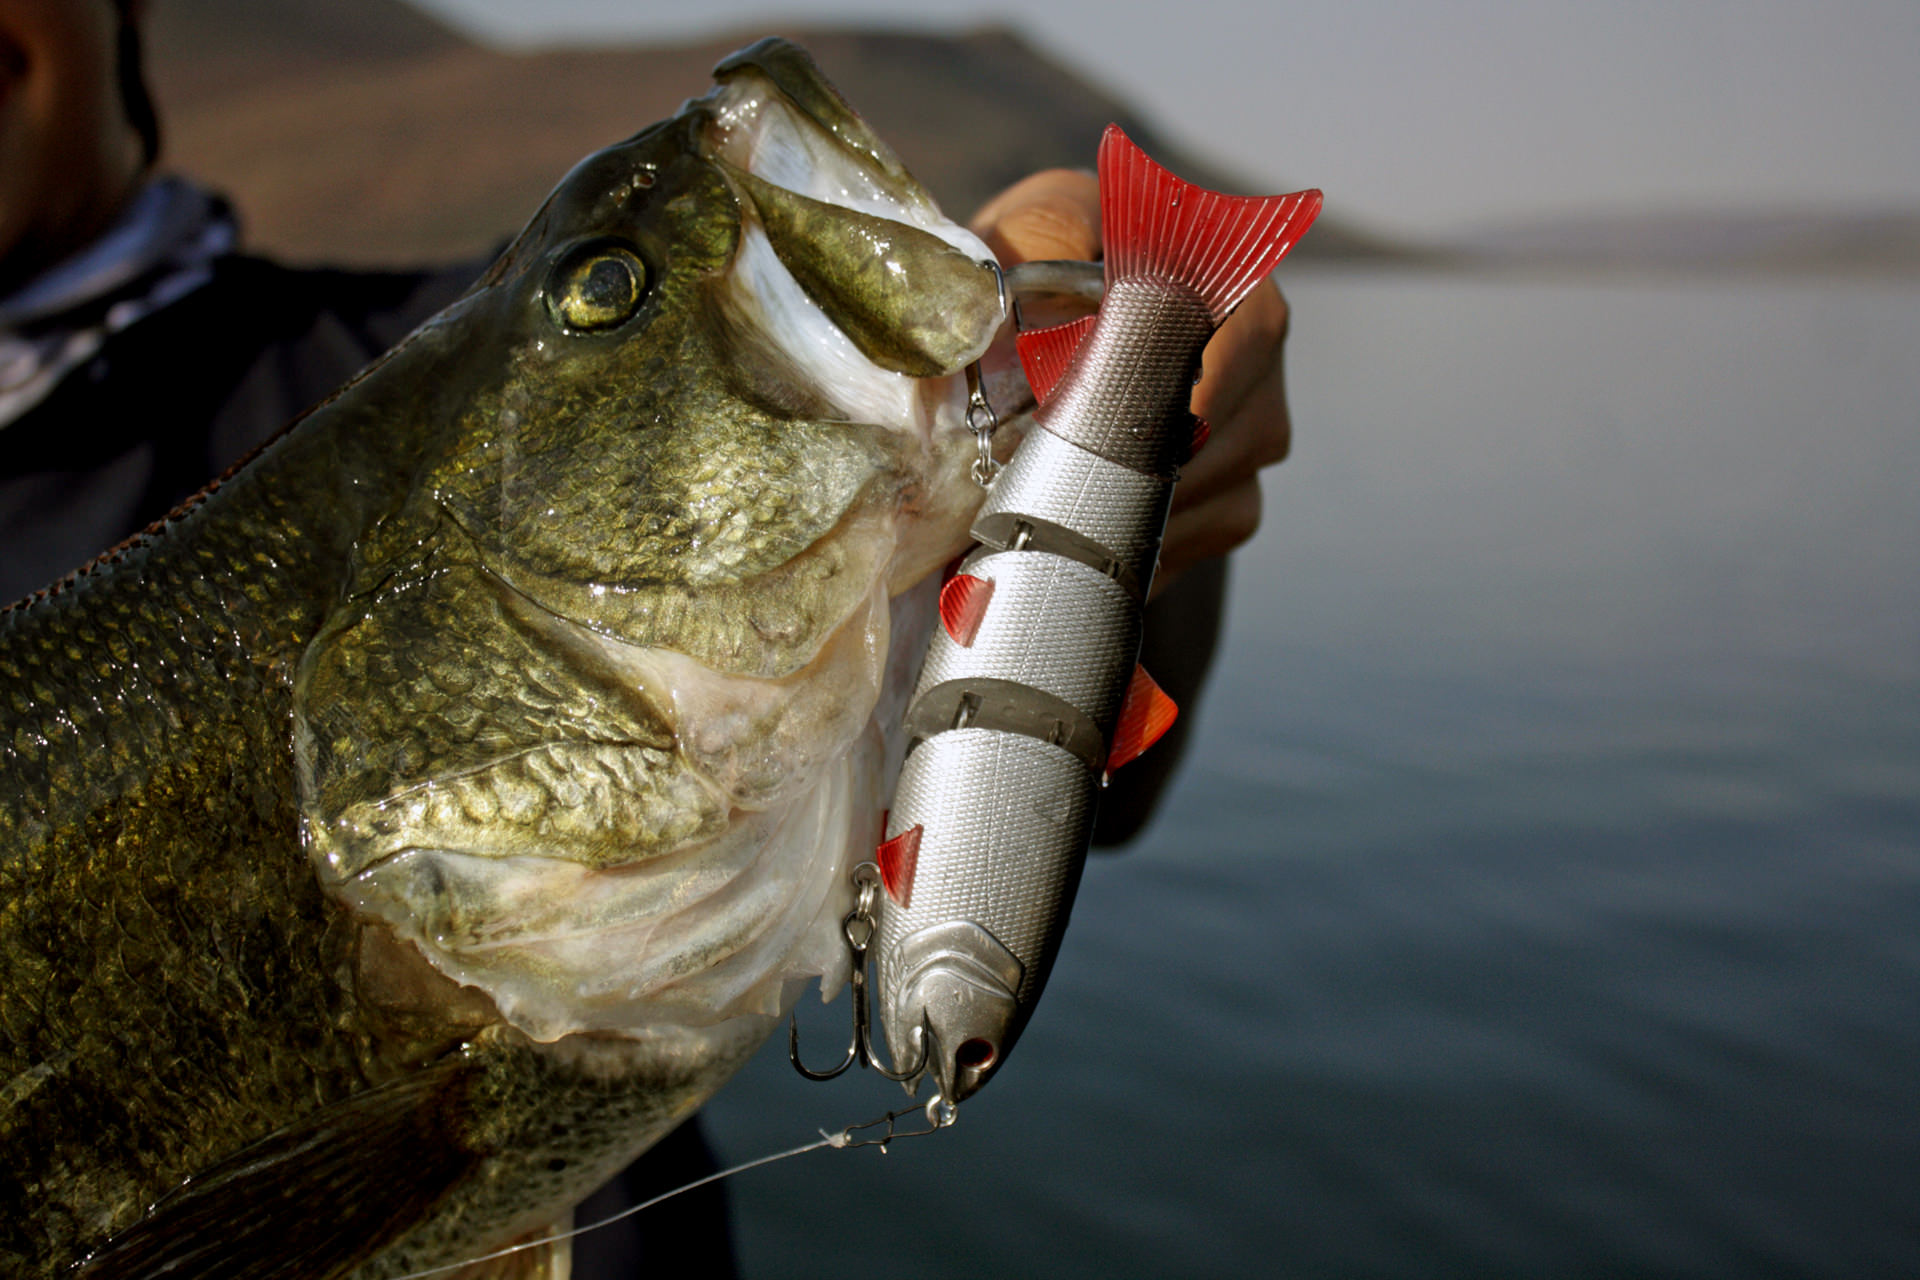 I fish the BBZ1 with 20lb fluorocarbon line. For big baits with large hooks, some line stretch is actually a good thing.